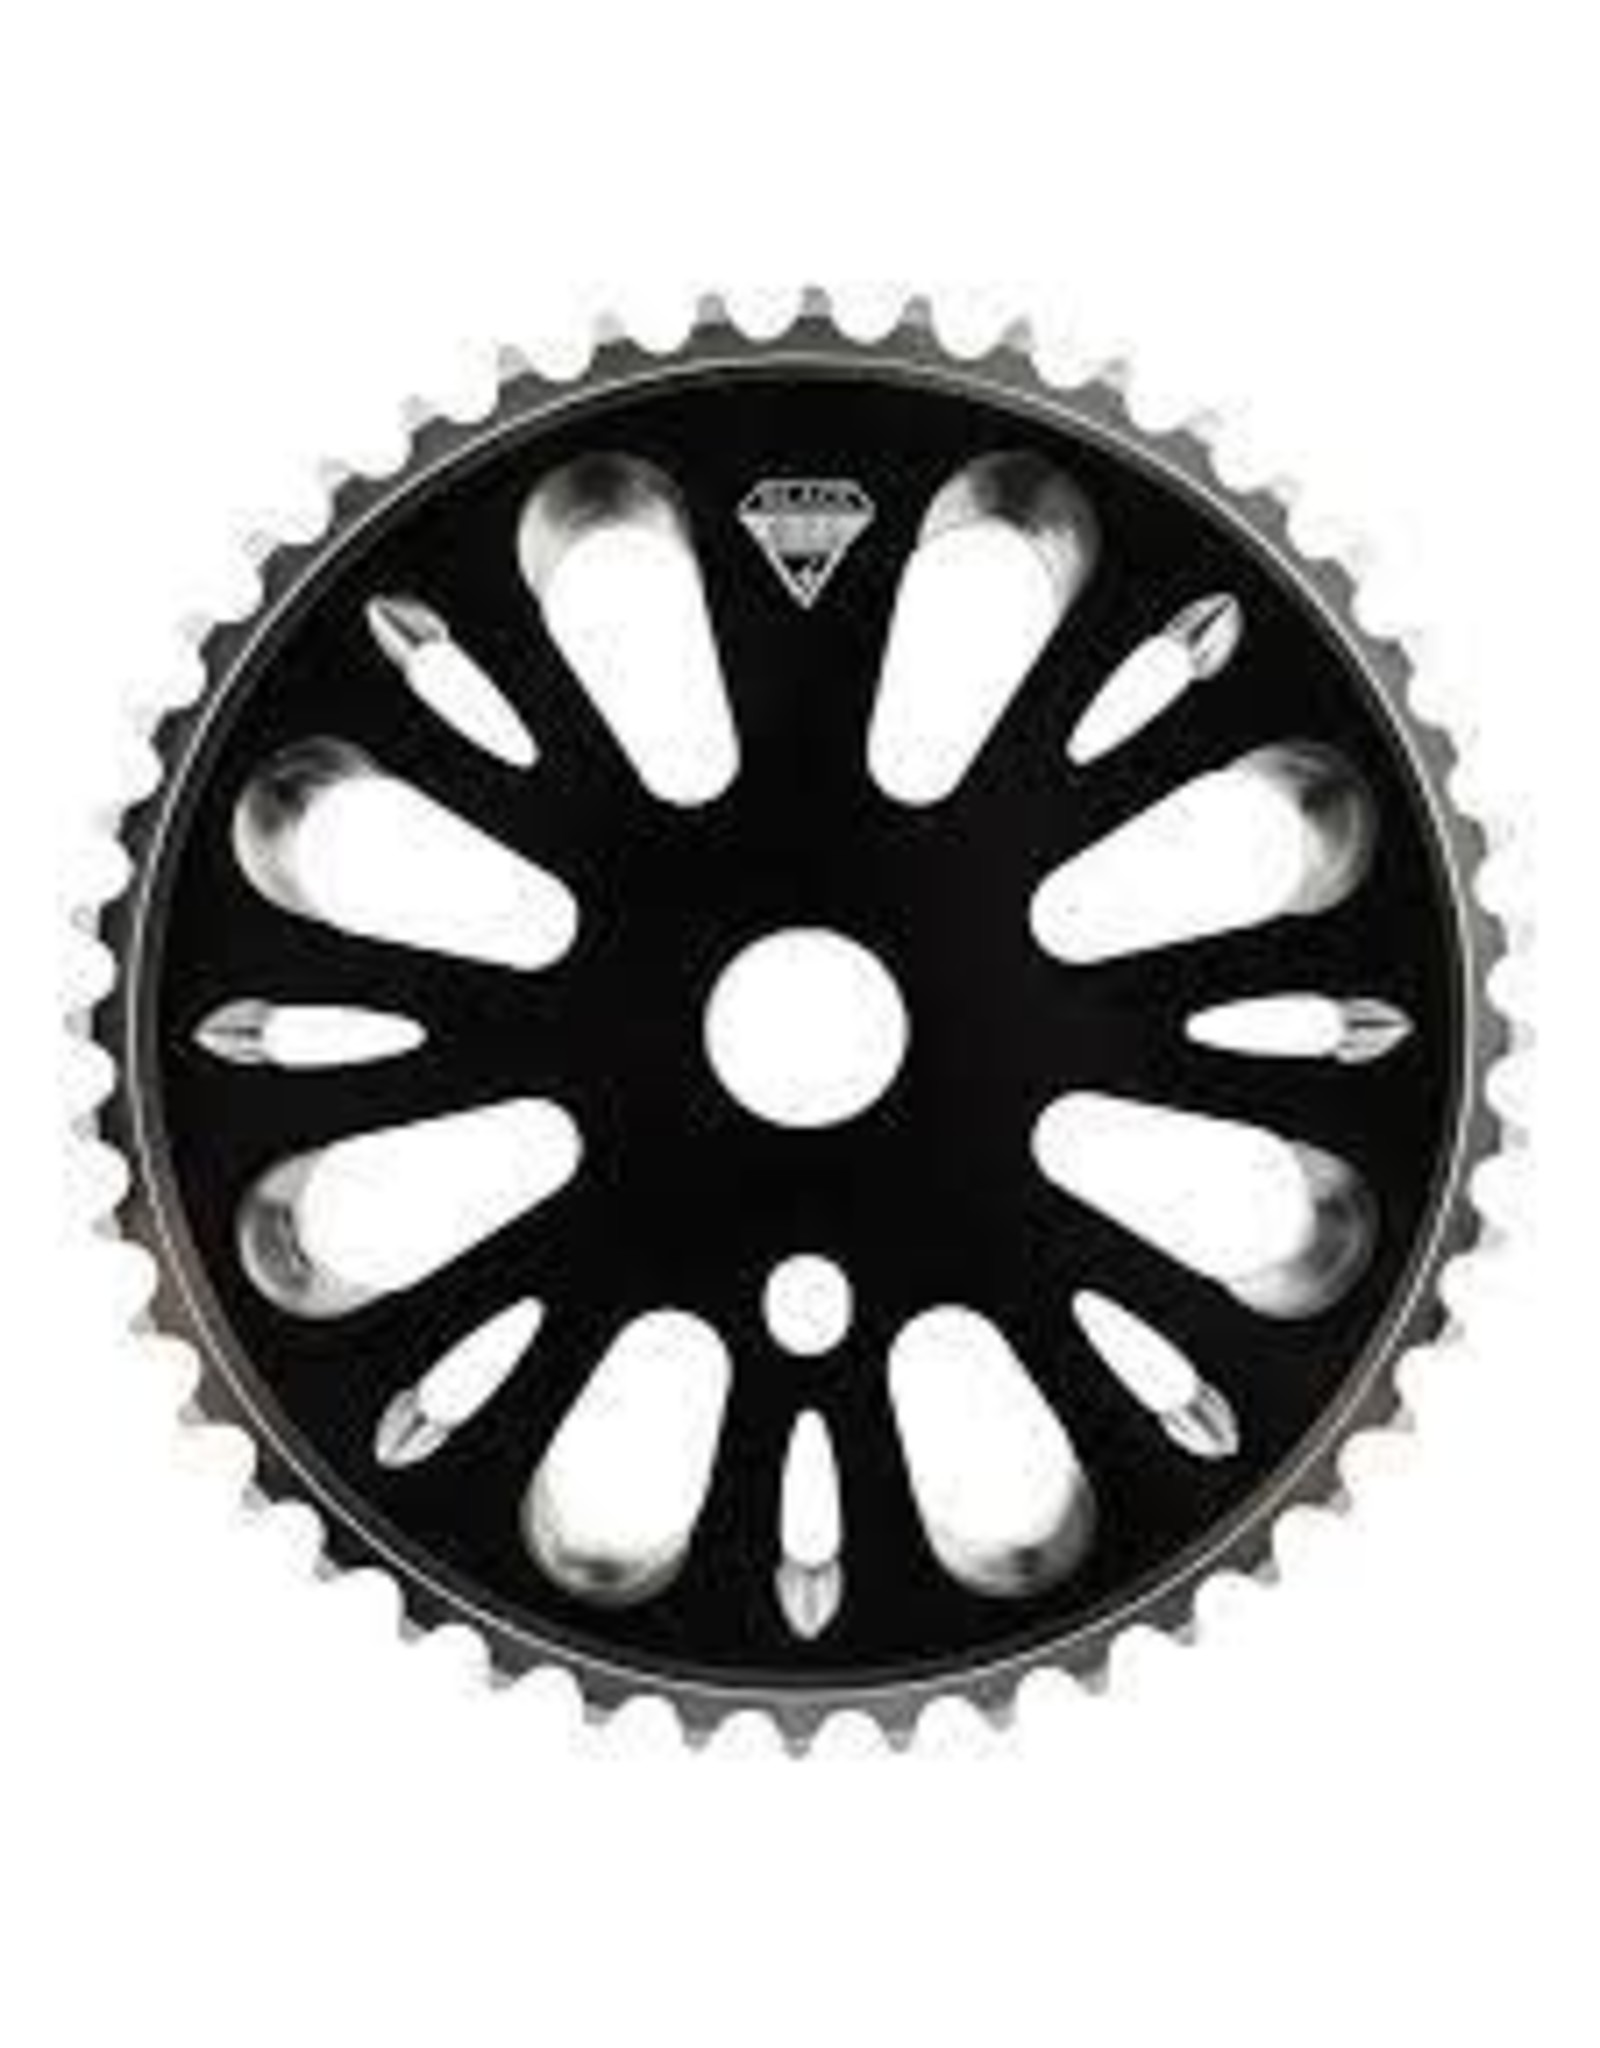 BLACK OPS Chainring Blk-Ops 1pc 44T 3/32 STL BK